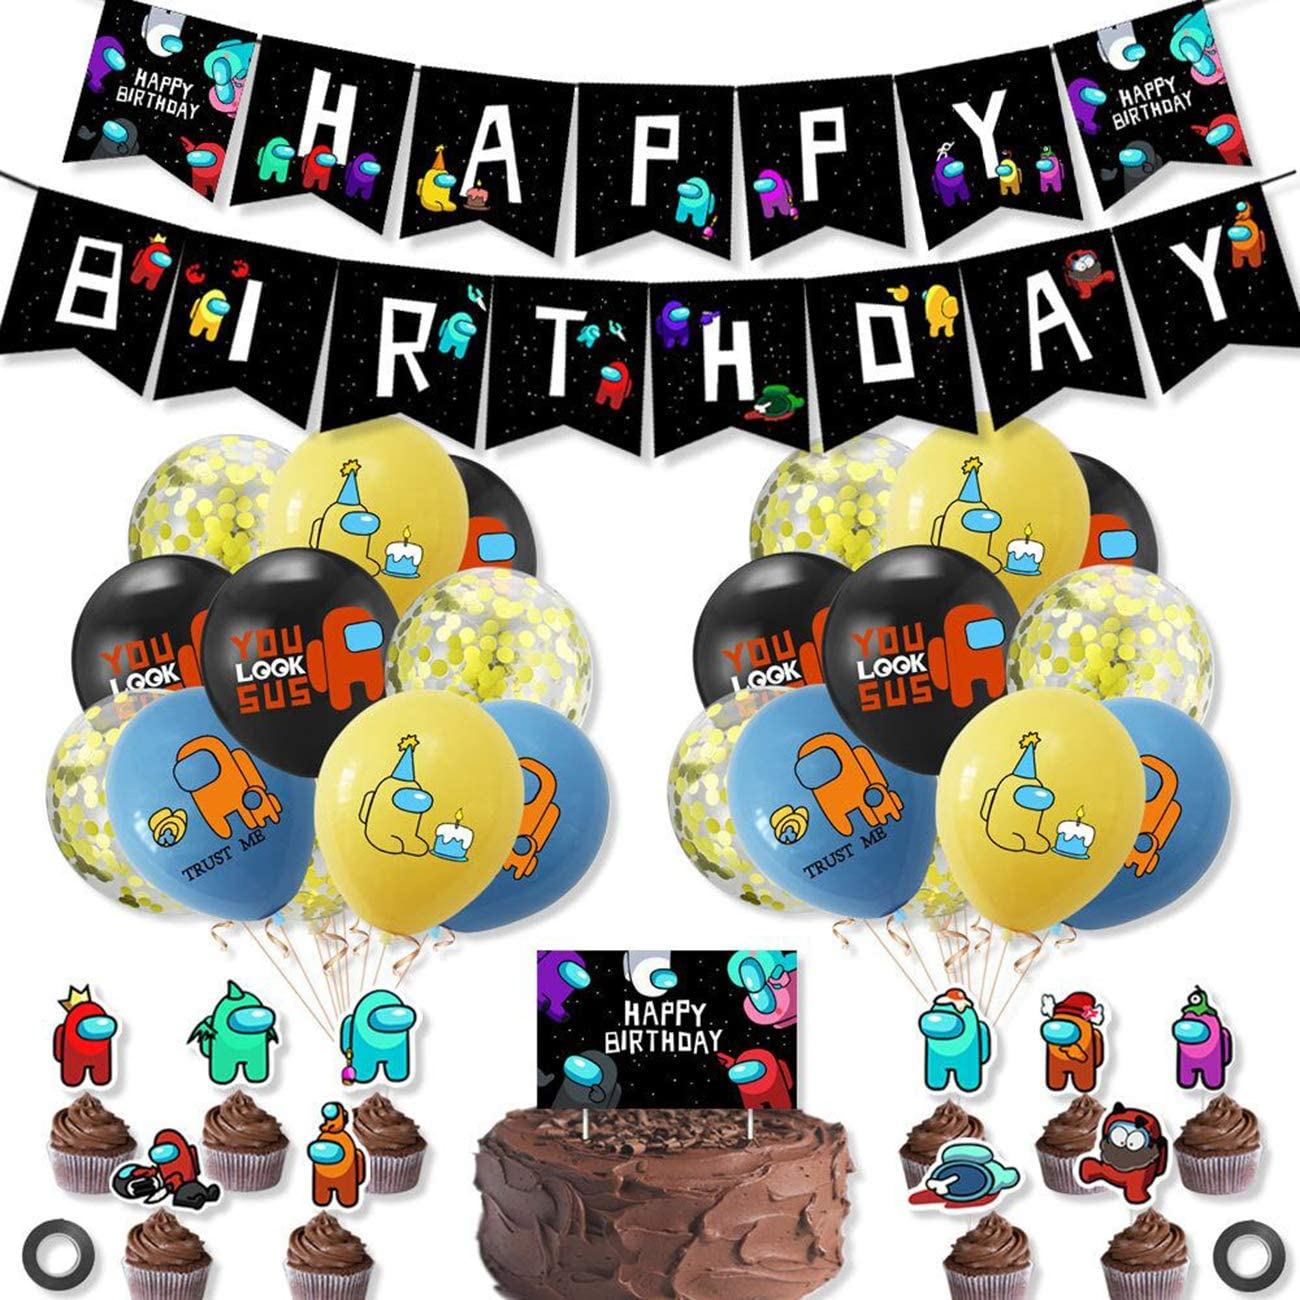 BLATOMY Among Us Birthday Party Decorations Cupcake Toppers Invitation Cards Balloons Among Us Theme Game Party Supplies for Kids with Happy Birthday Banner